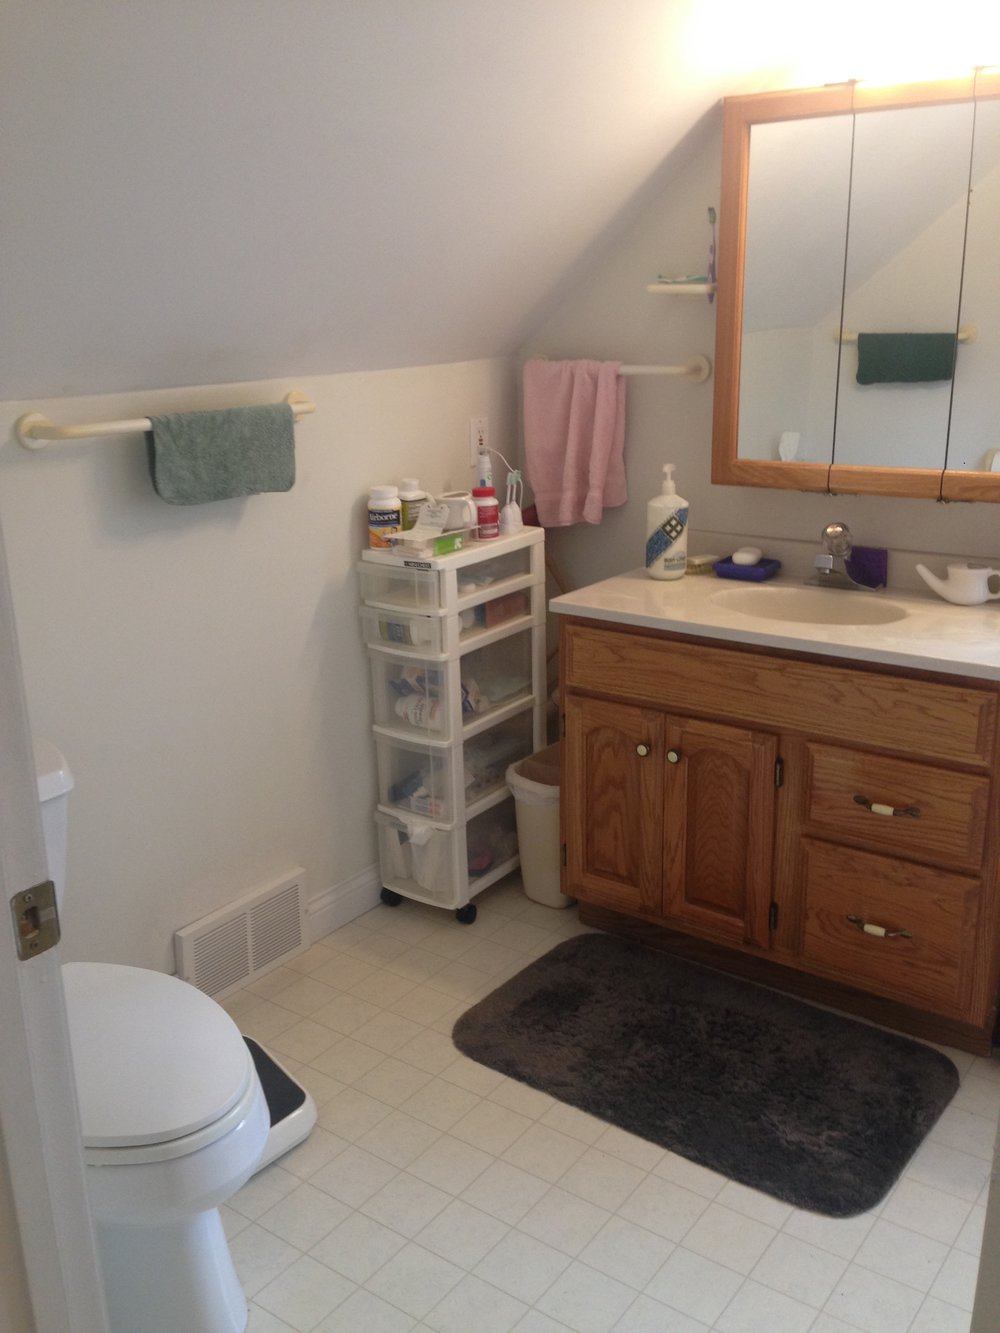 Builder-grade materials and inefficient use of the space didn't allow the bathroom to live up to its potential.